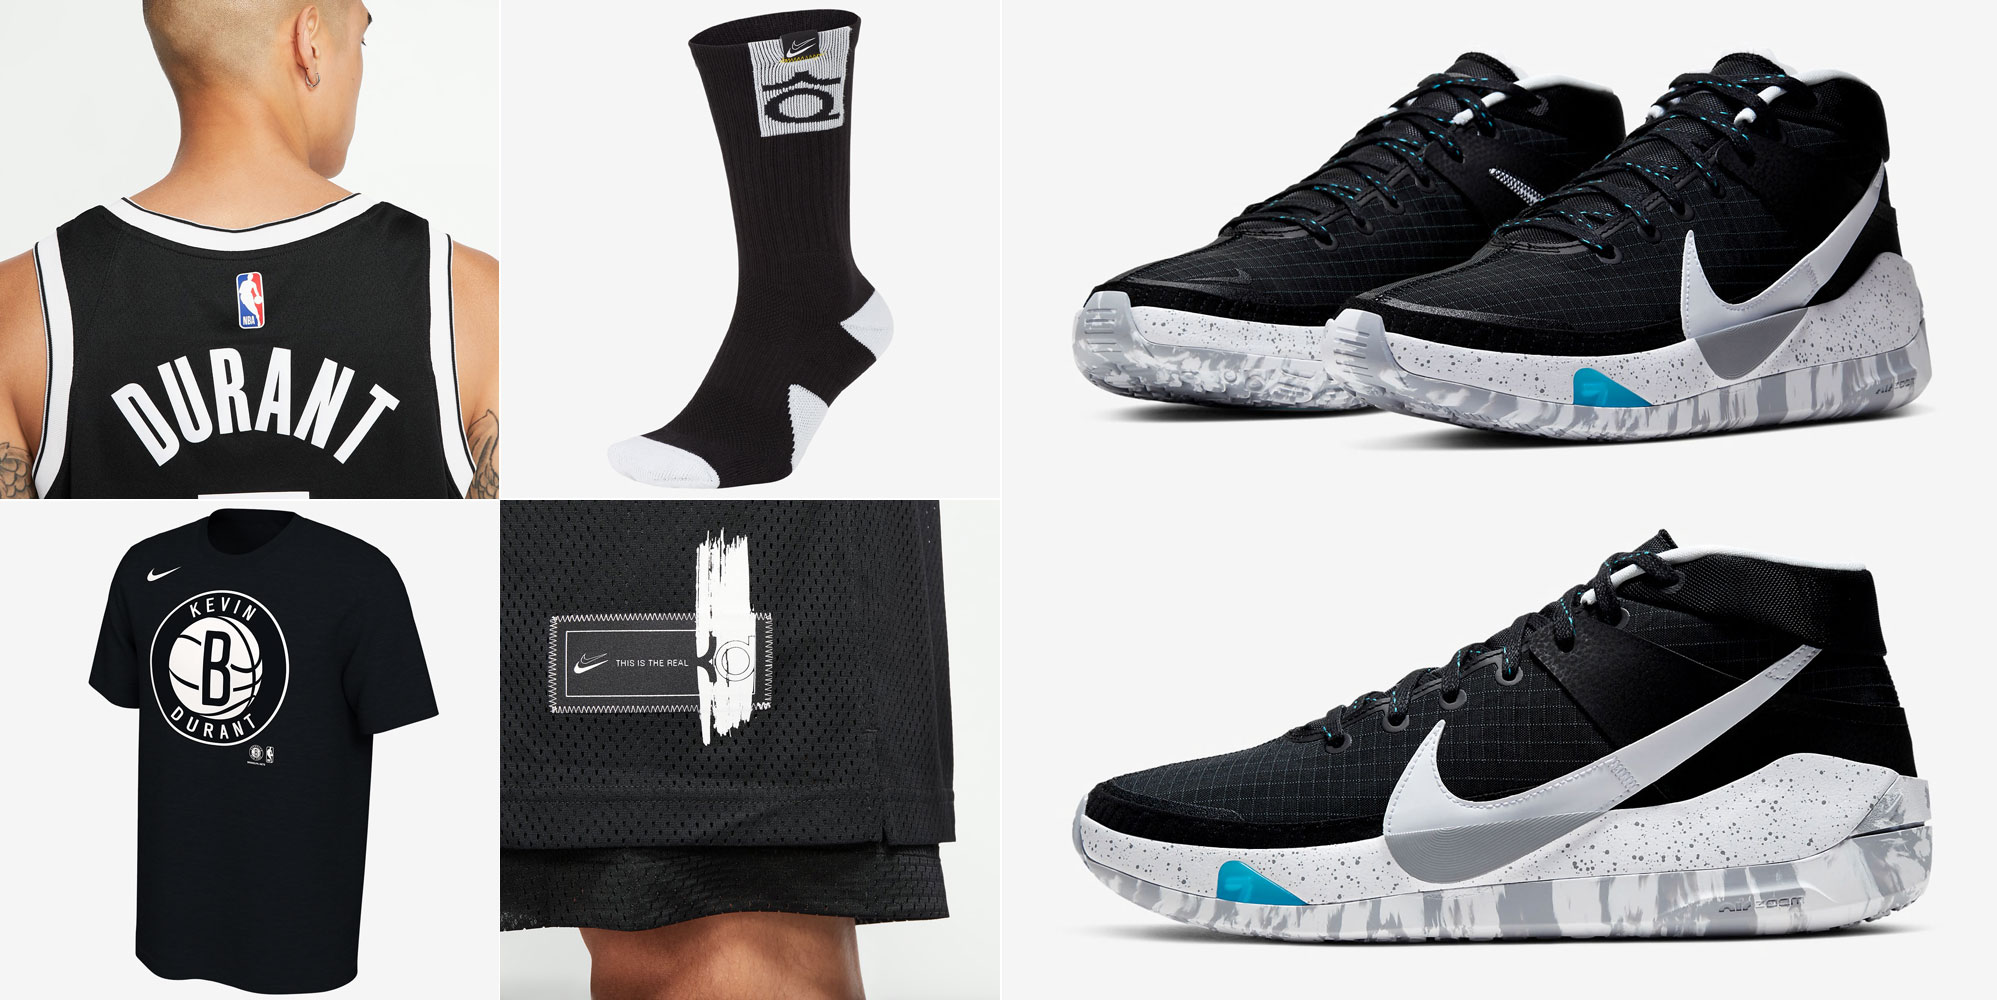 nike-kd-13-black-white-clothing-outfits